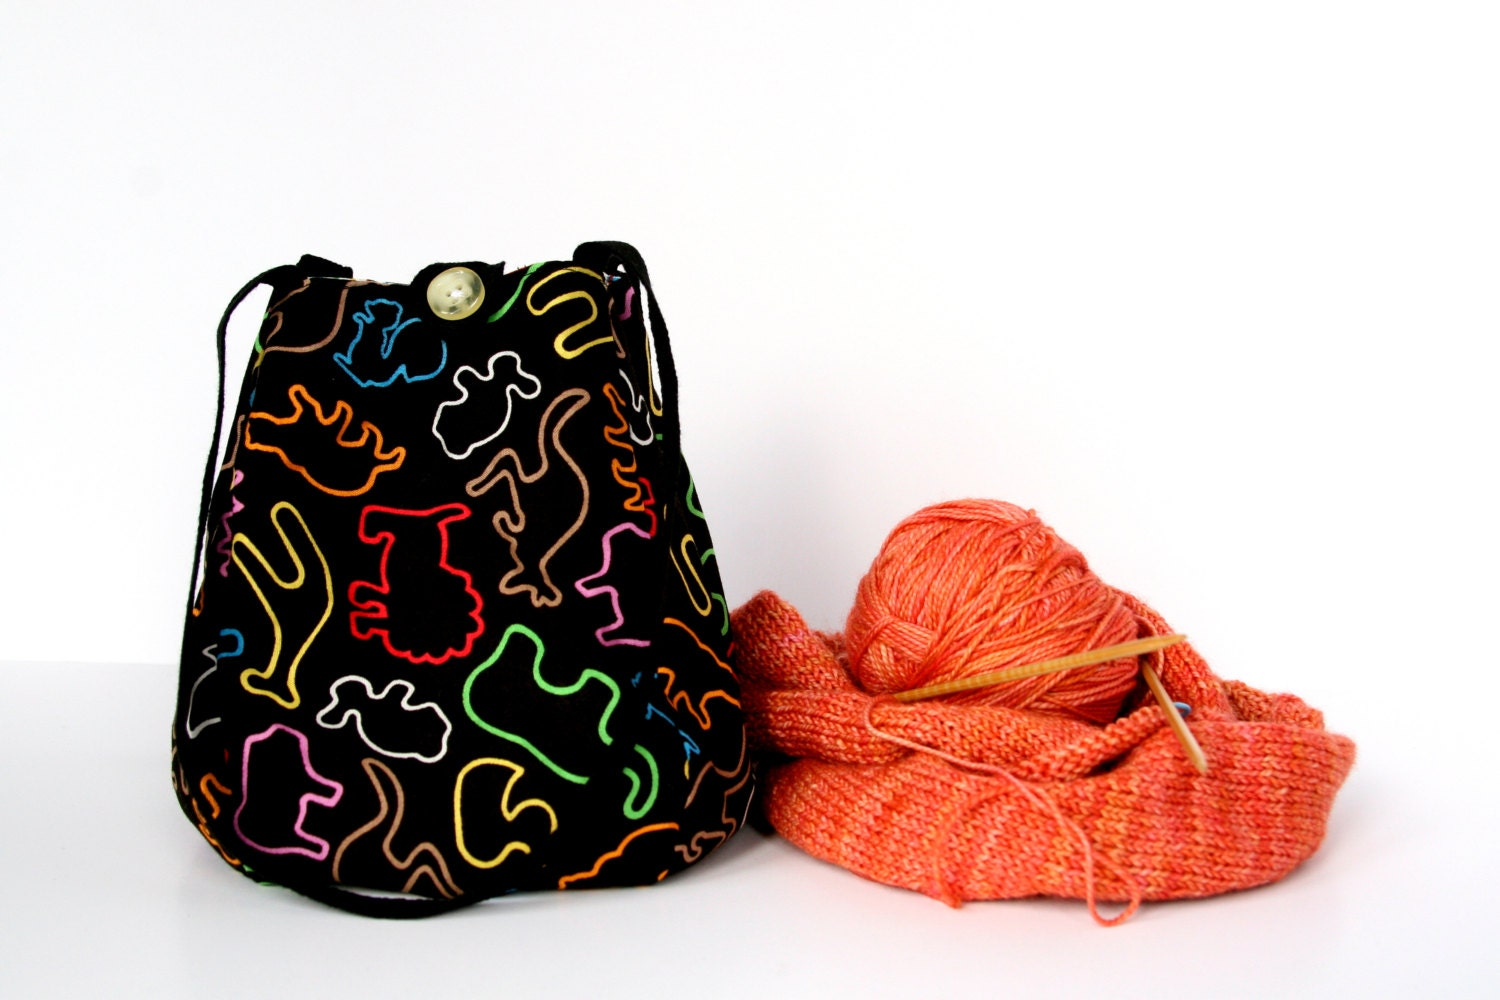 Knitting Project Bag / Crochet Project Bag / by chubbycloud